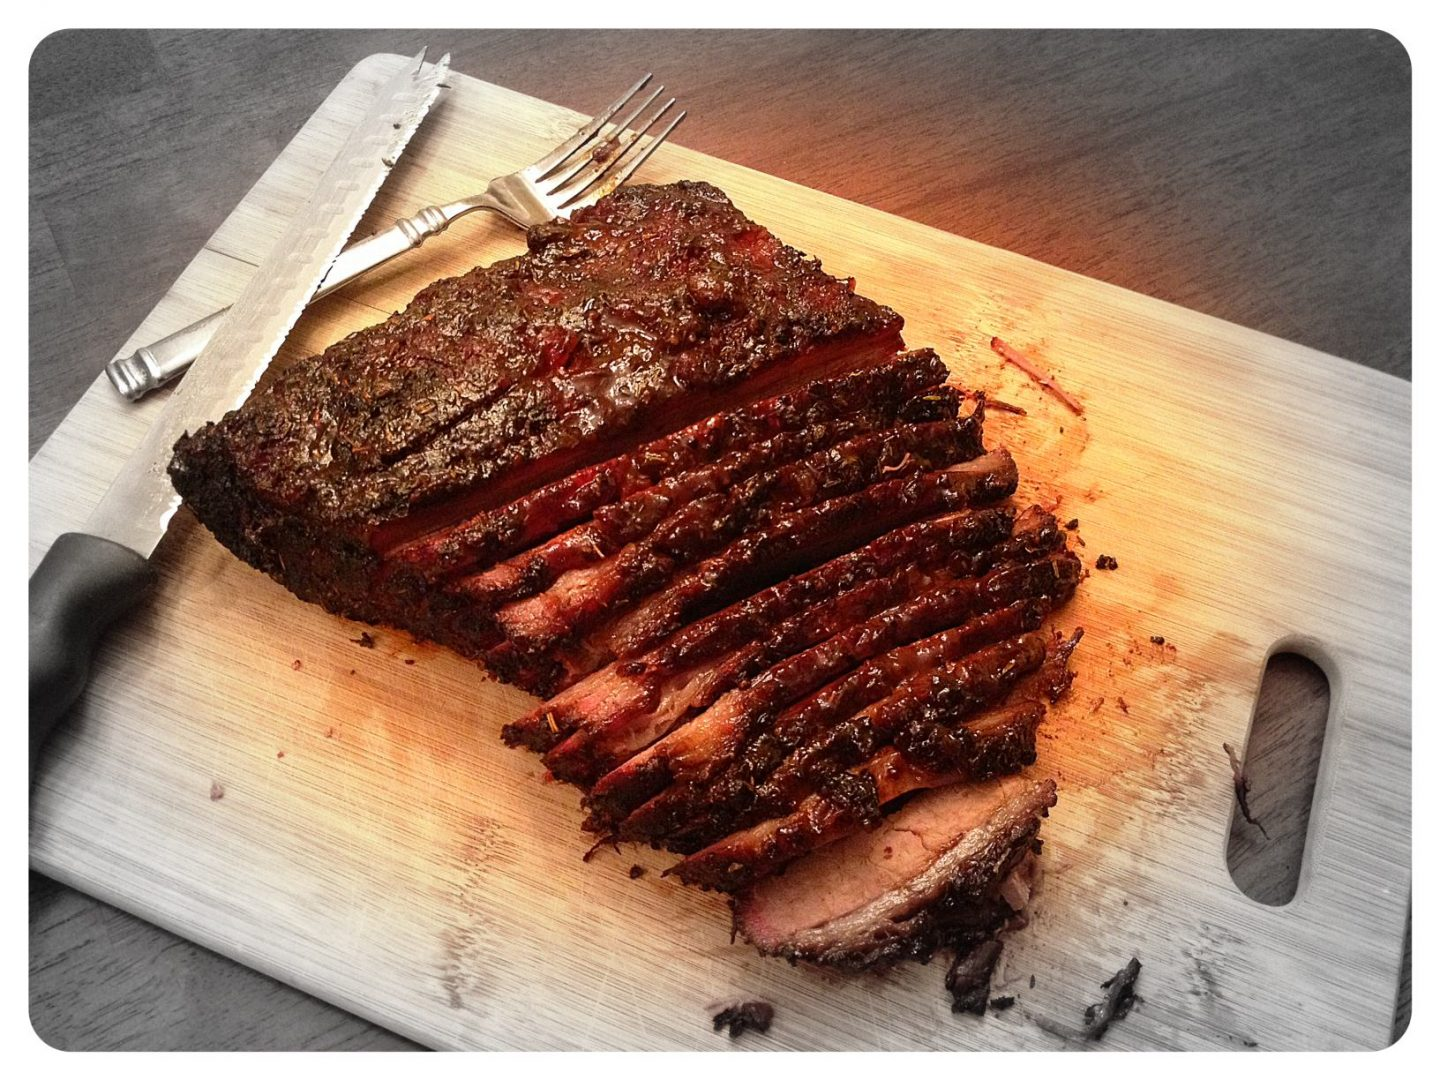 brisket recipe, Adam Perry Lang Brisket Recipe, Chris Lilly Brisket recipe, Beef Brisket recipe, Brisket on the Weber Smokey Mountain, Brisket on the Big Green Egg, How to Smoke a Brisket, Brisket Recipe